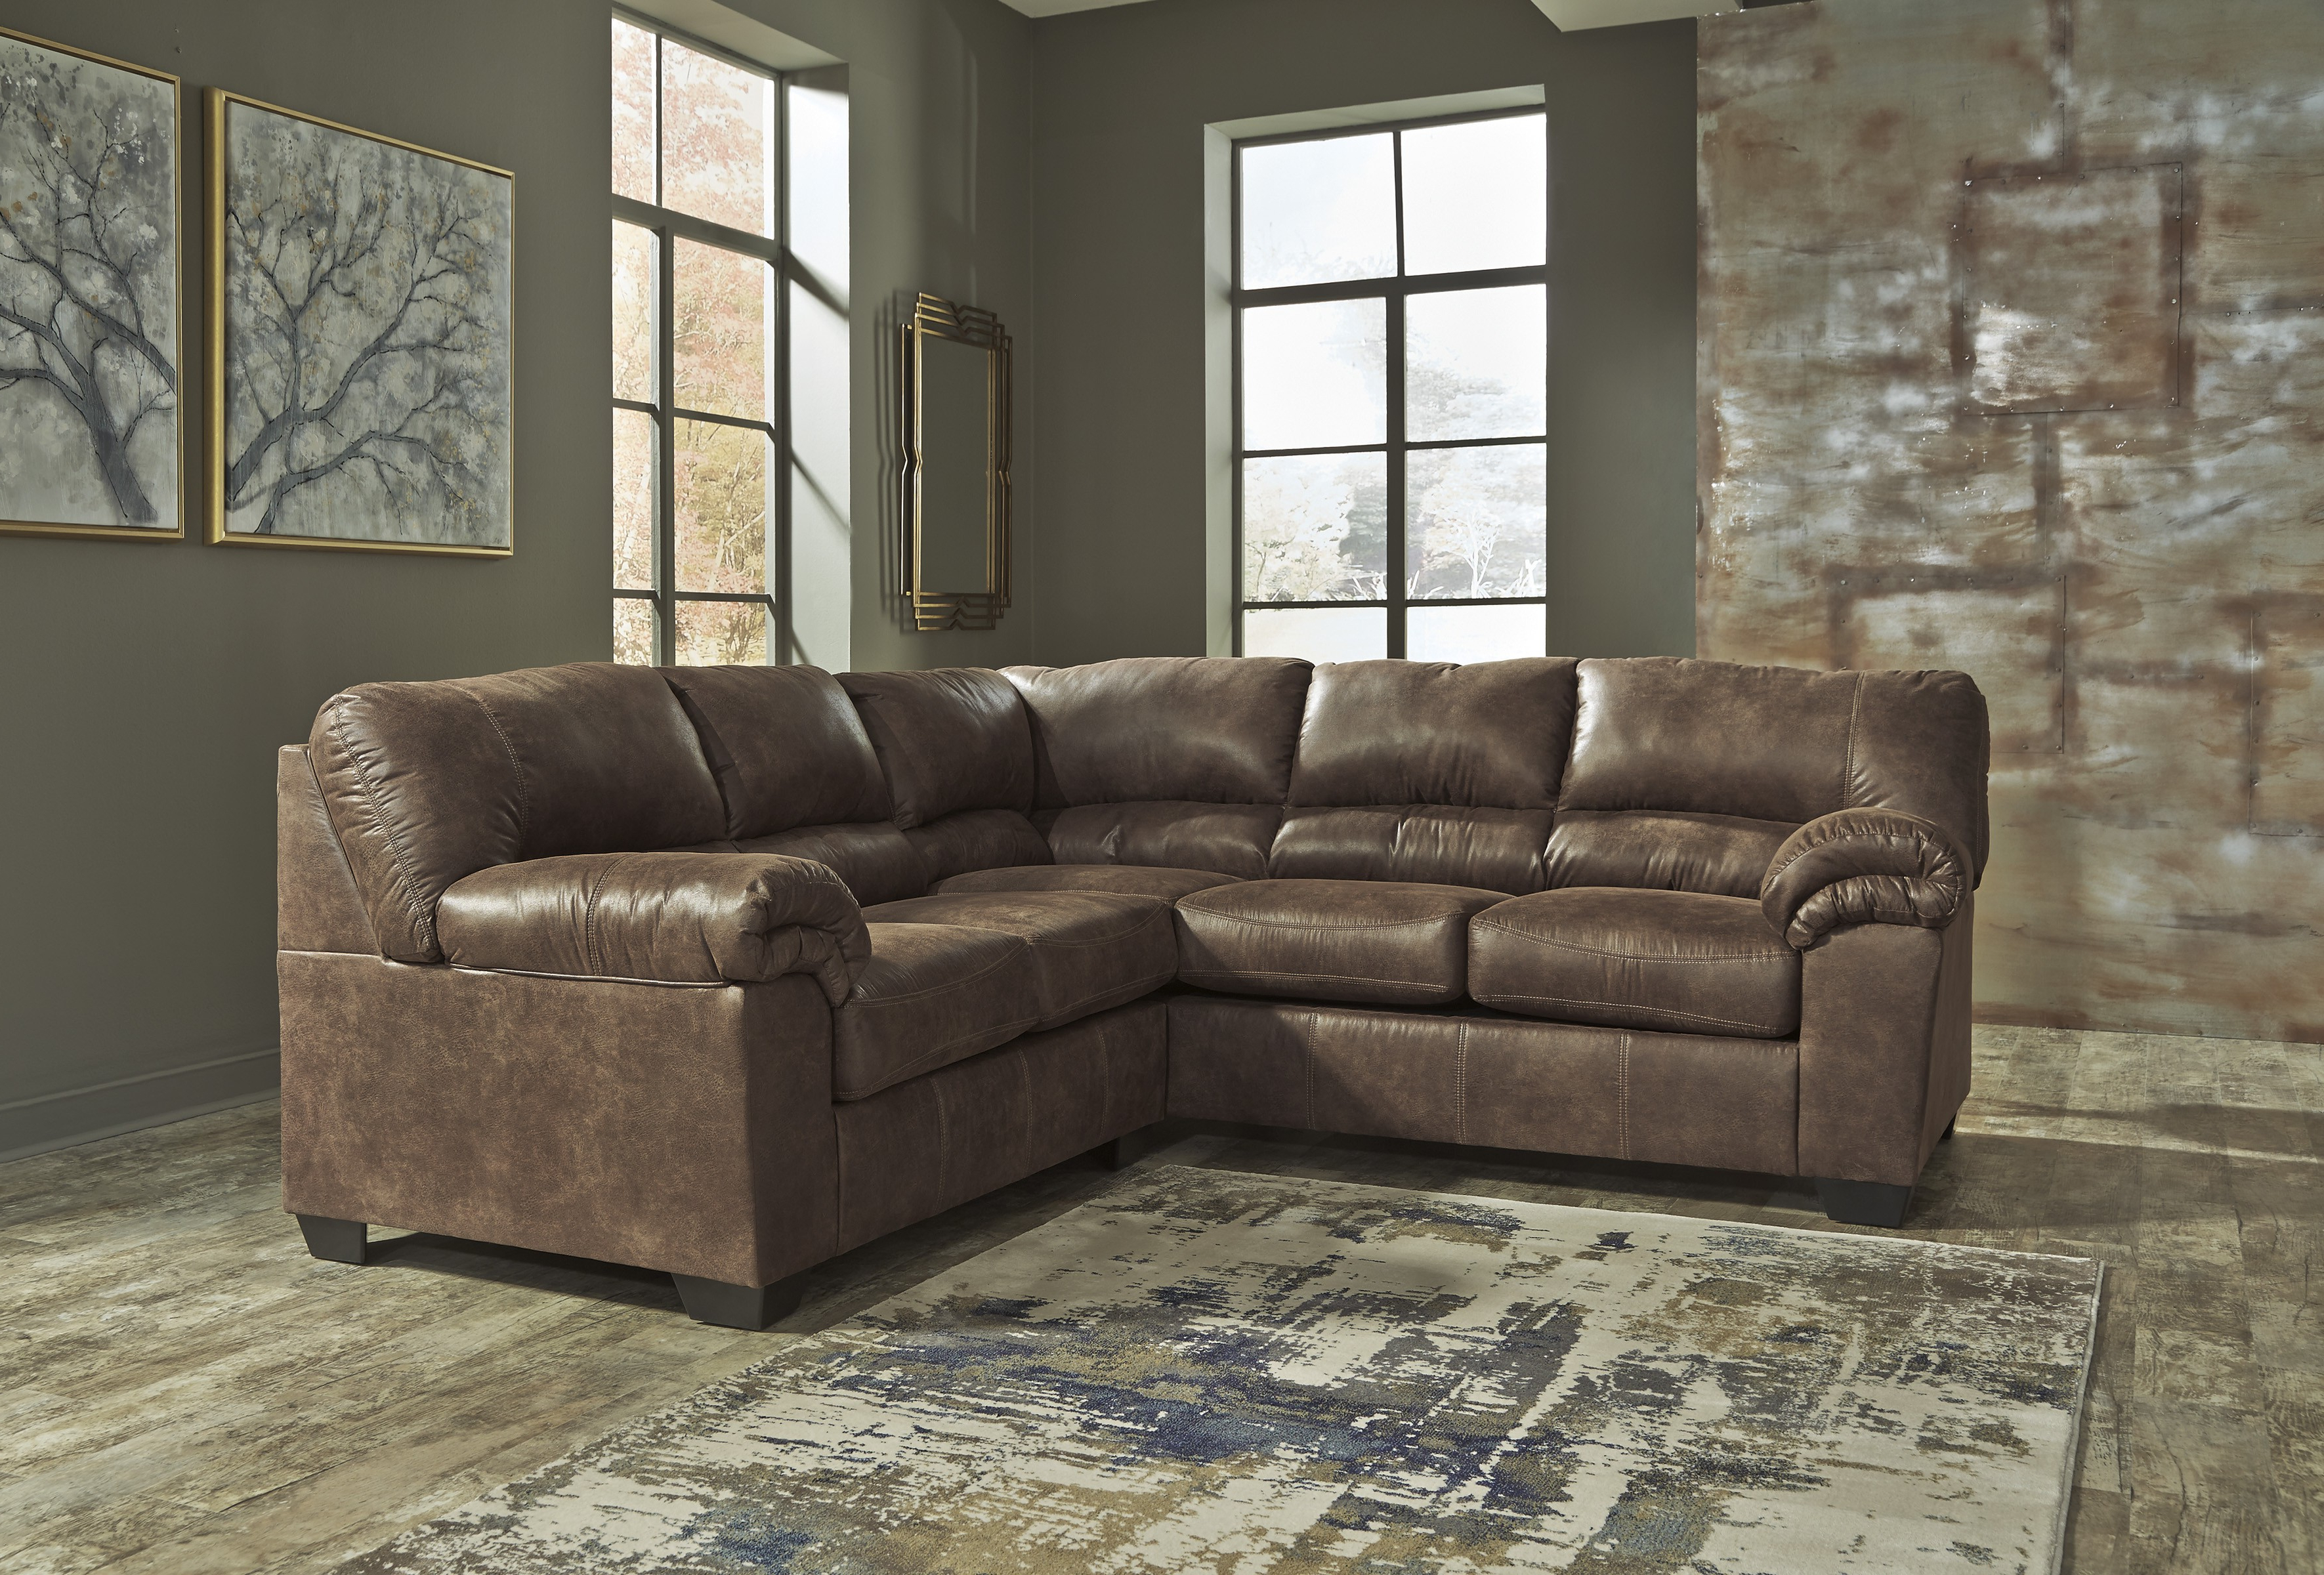 Baci Living Room Pertaining To Turdur 3 Piece Sectionals With Raf Loveseat (View 4 of 20)